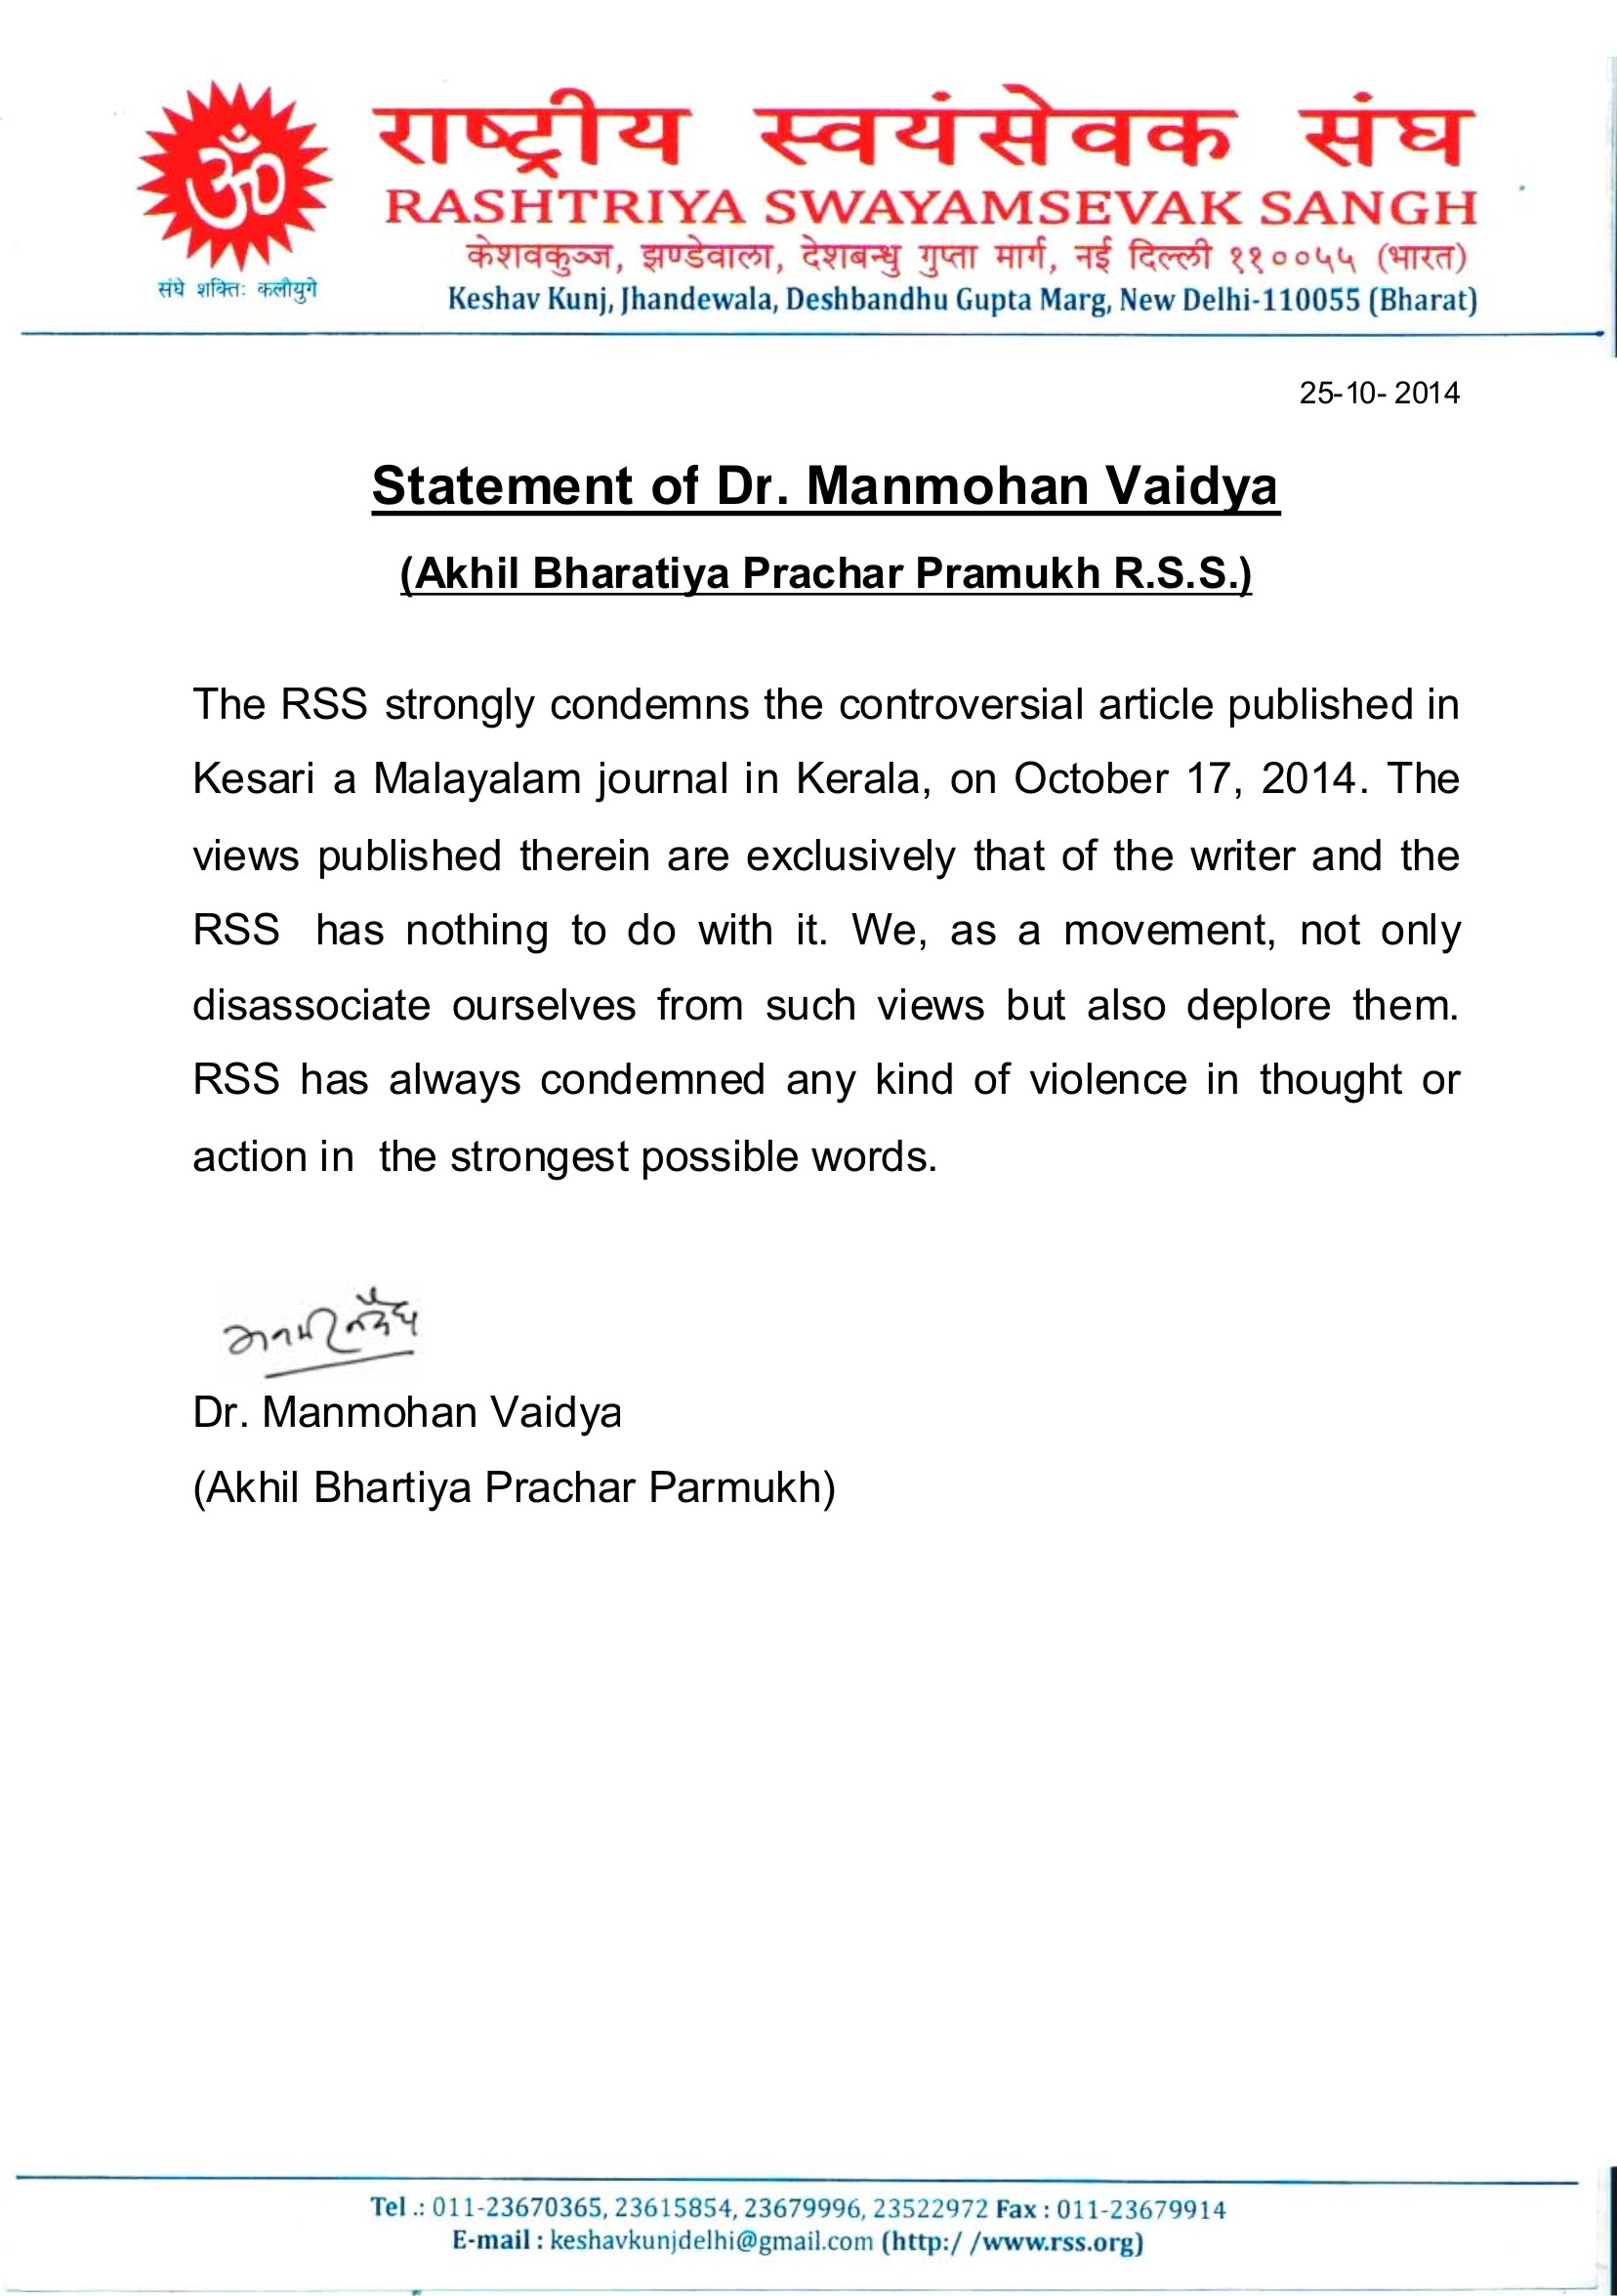 Rss Clarifies On Kesari Article Controversy Says Rss Strongly Condemns The Controversial View